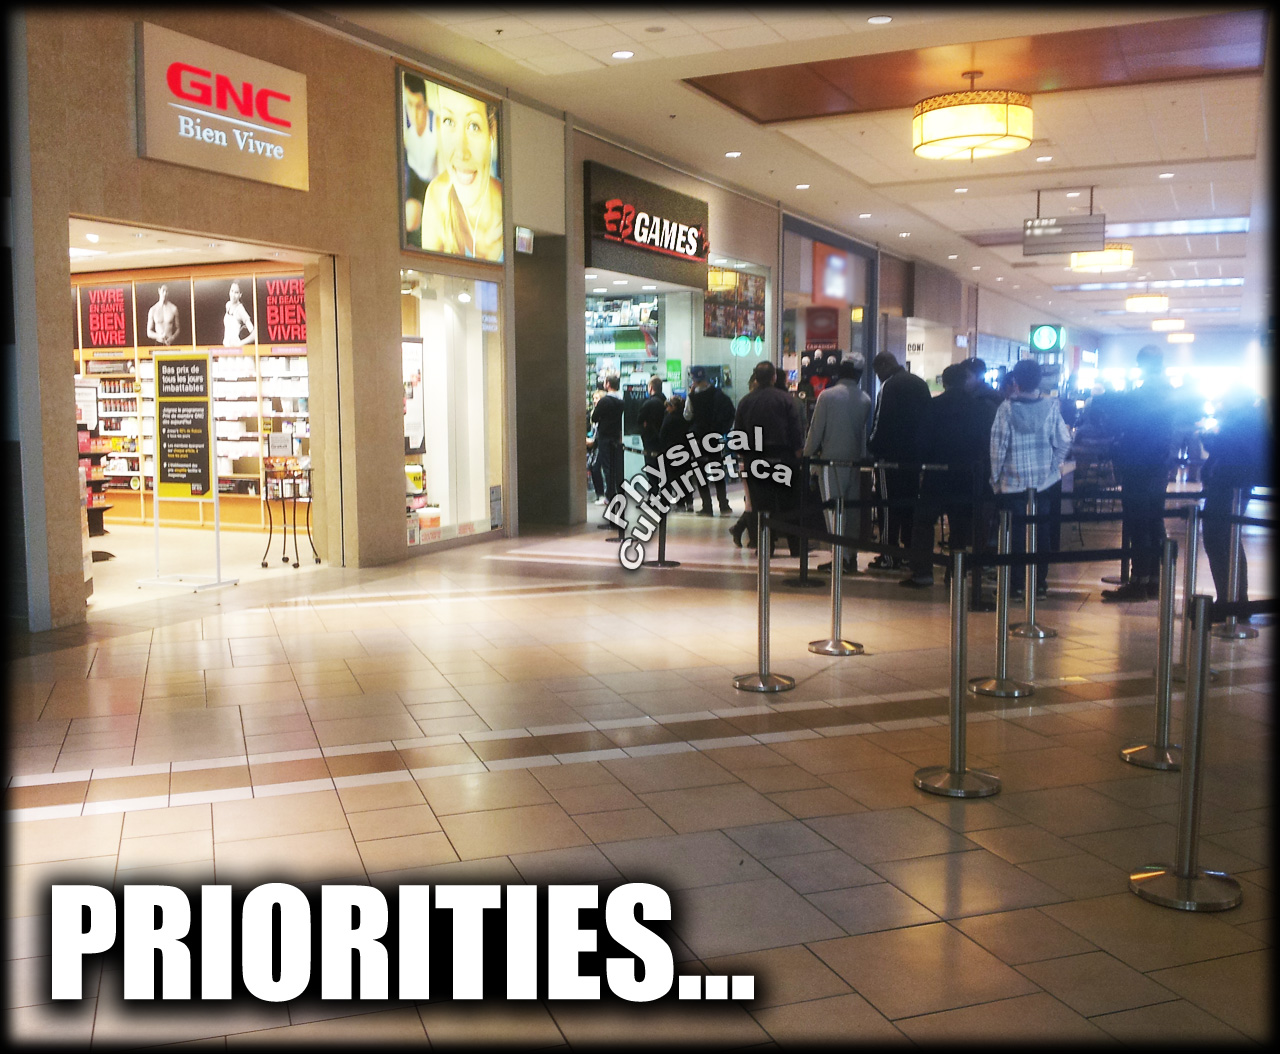 grand theft auto shopping mall line gnc vs eb games 2013